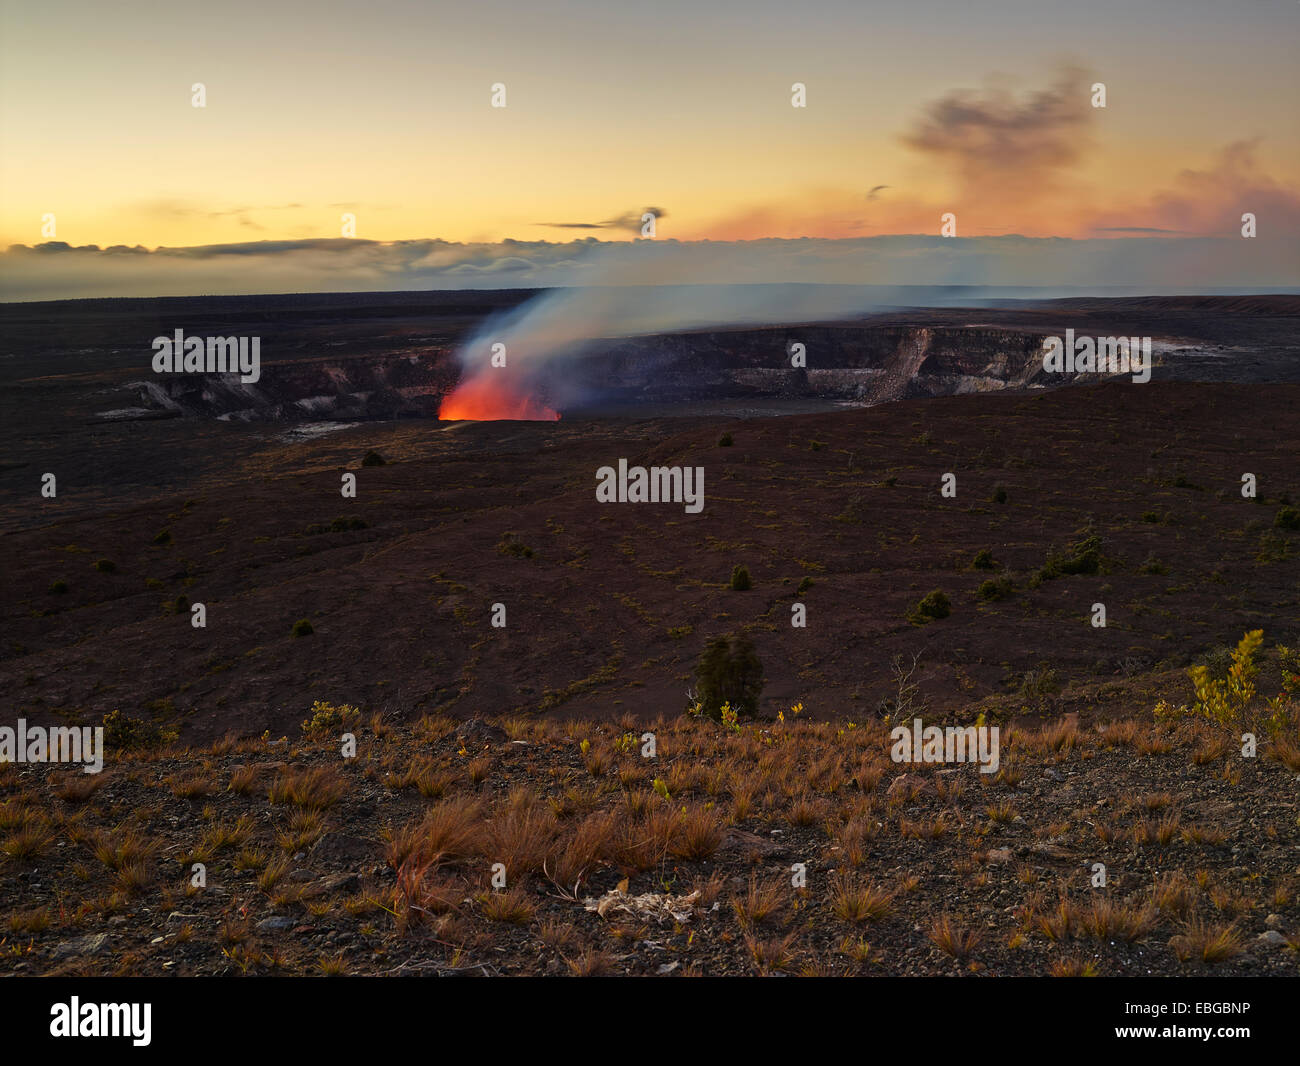 Halema'uma'u or Halemaumau crater, Kilauea crater, volcanic eruption, lava, red hot lava flow, Hawaiʻi-Volcanoes - Stock Image